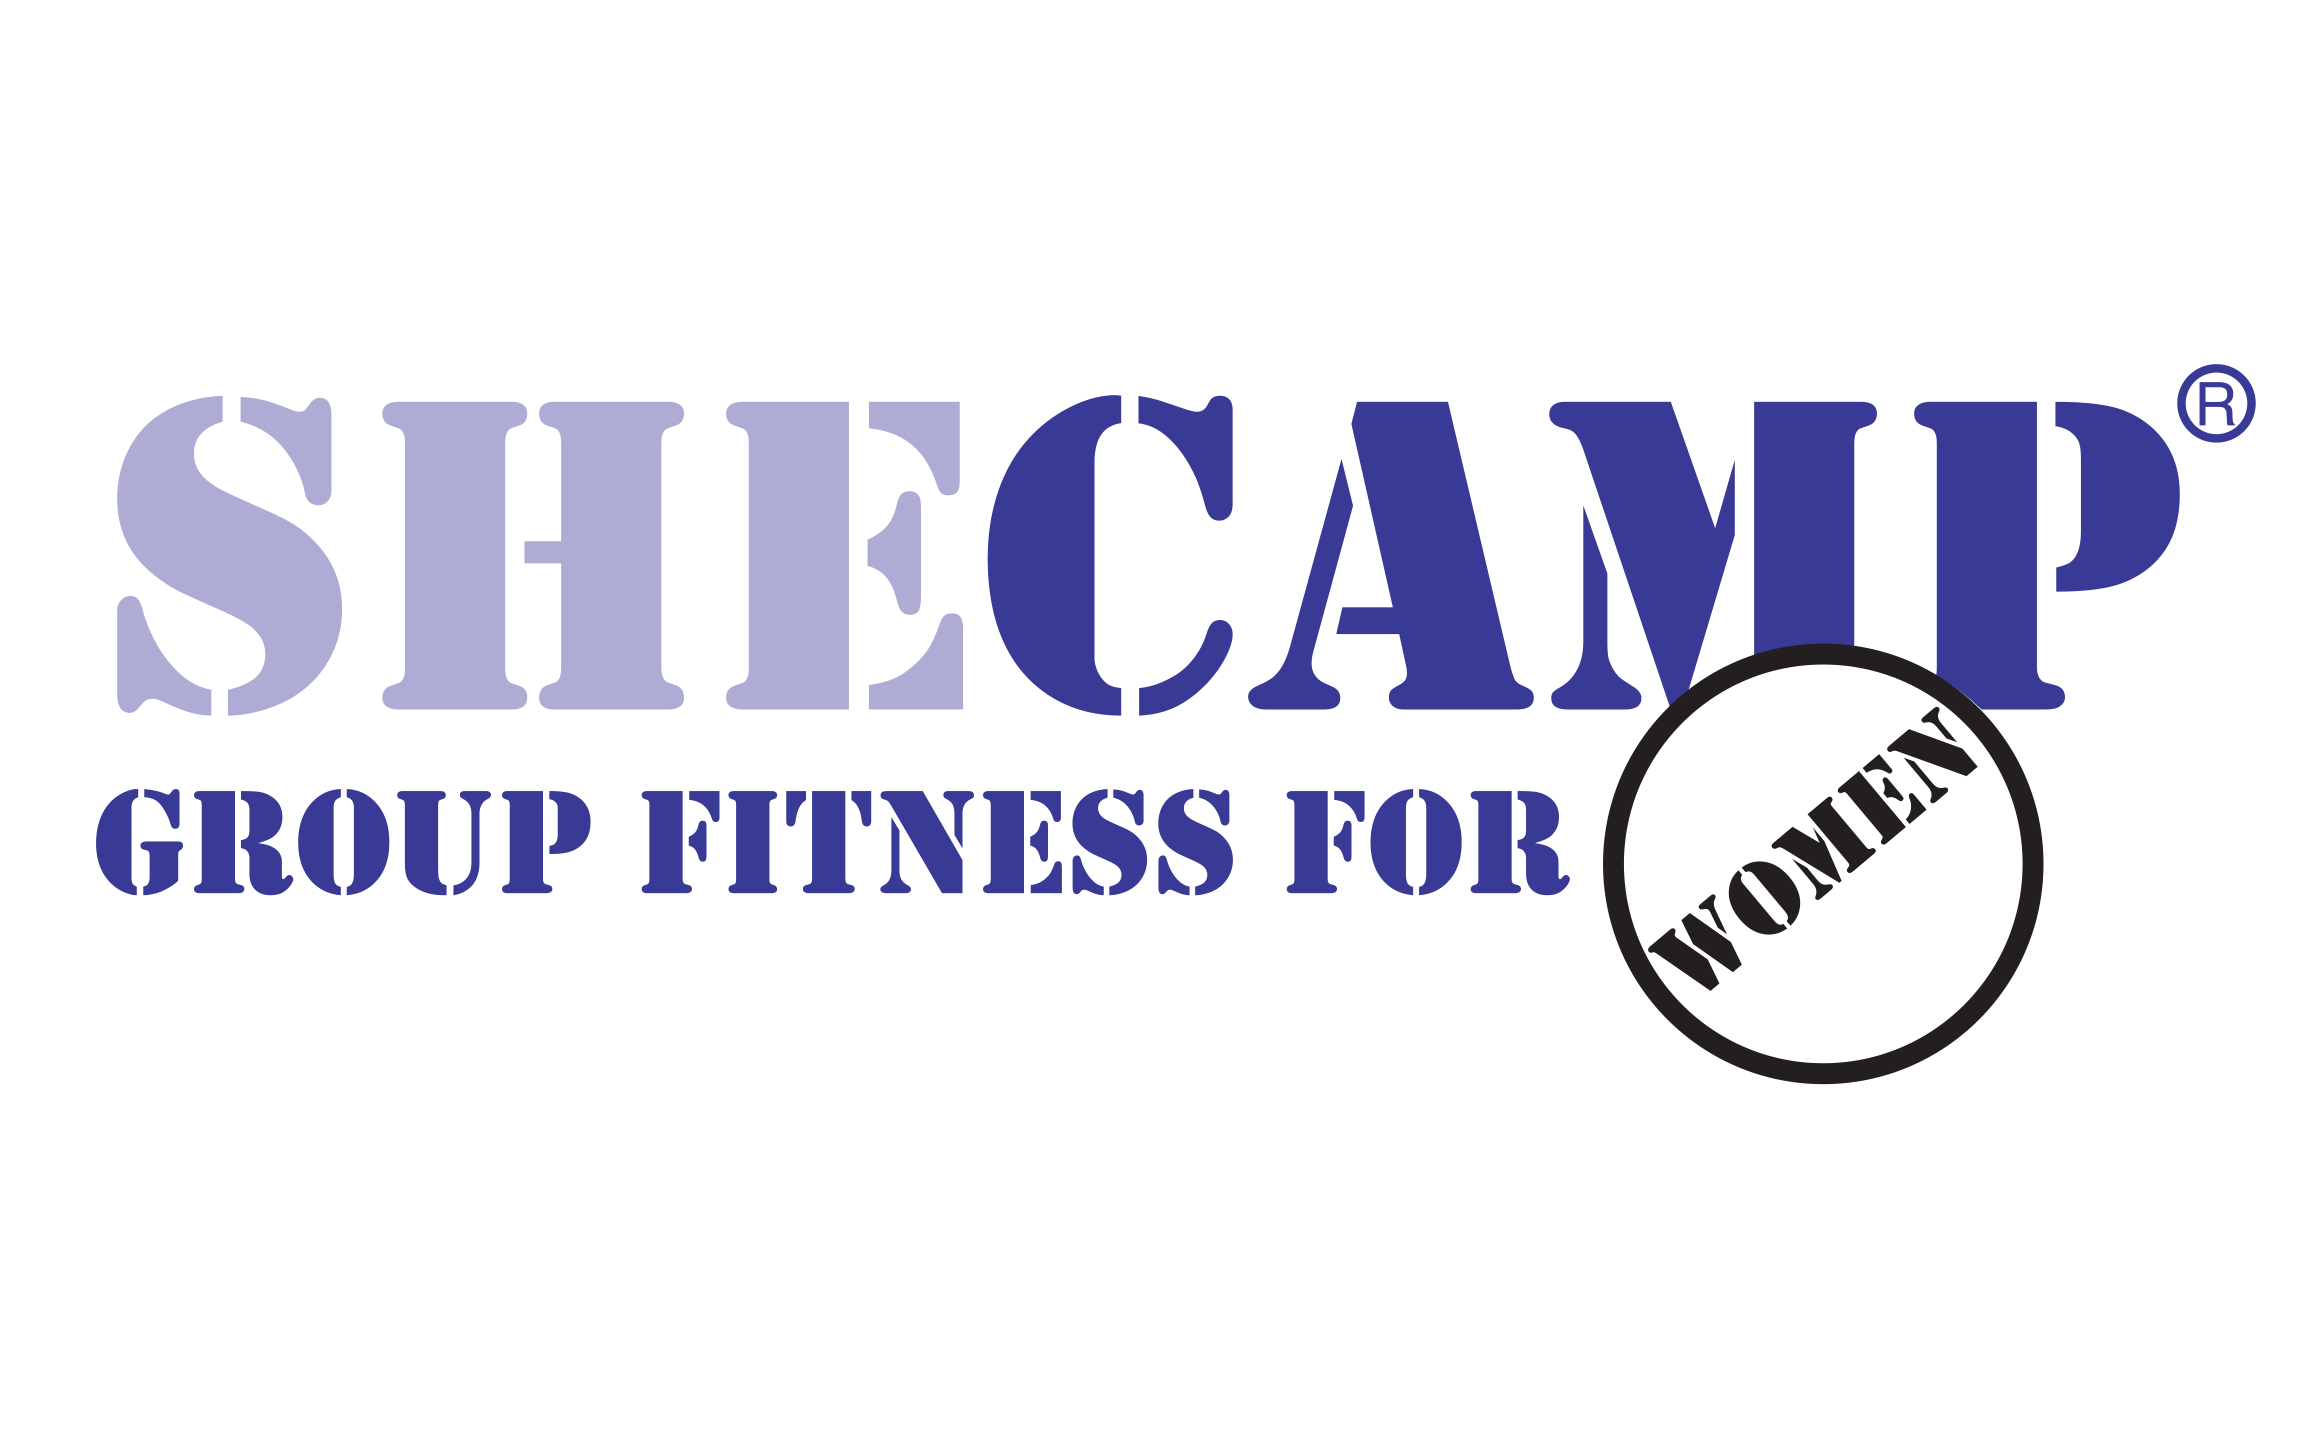 SheCamp Group Fitness